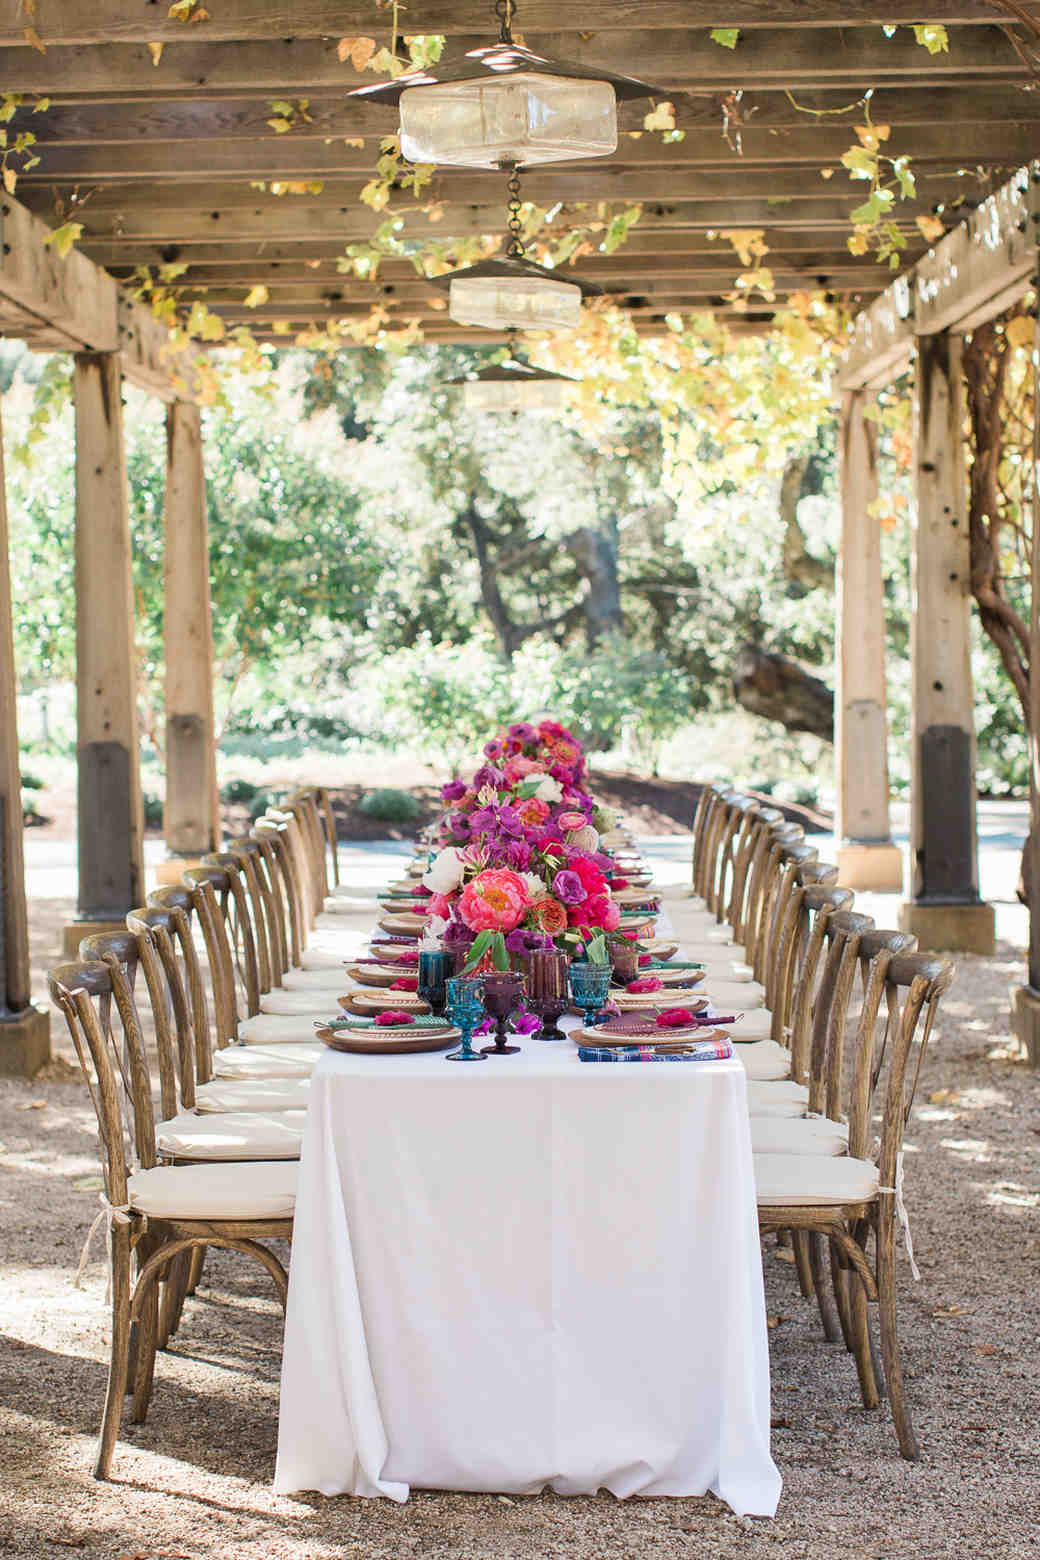 holman-ranch-bridal-shower-1016.jpg (skyword:345013)